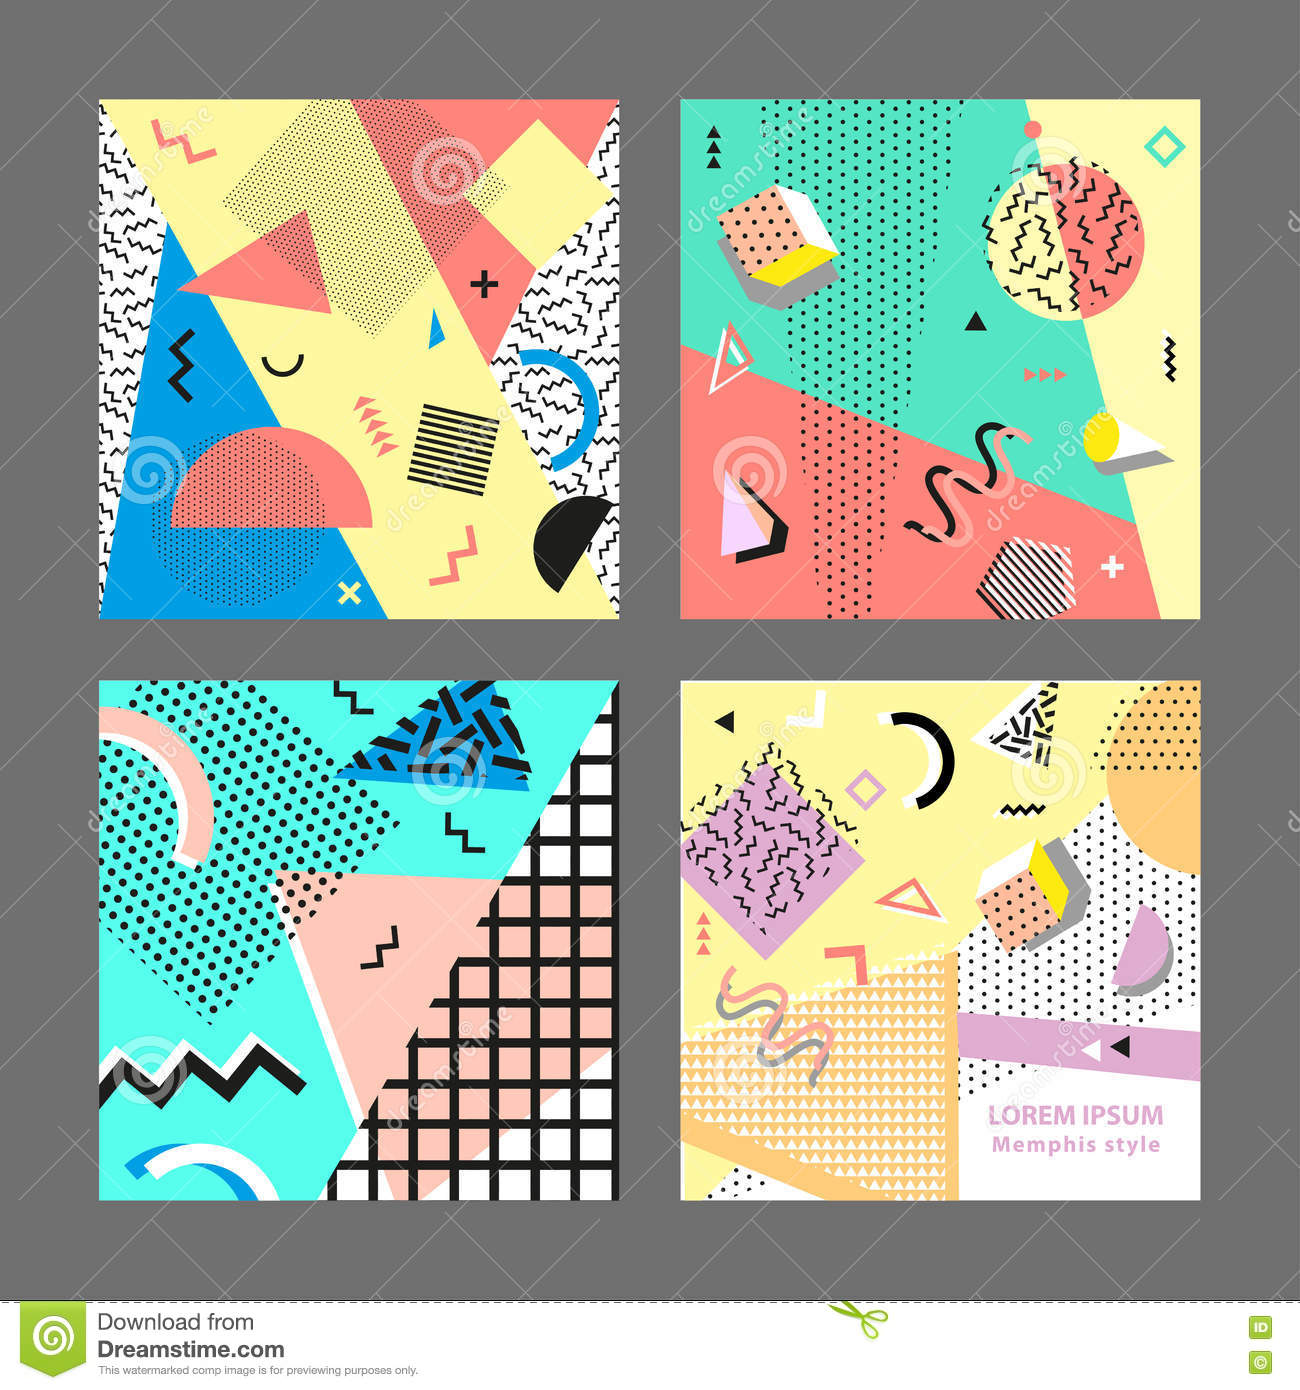 Poster design elements - Trendy Geometric Elements Modern Abstract Design Poster Retro Vintage 80s Or 90s Fashion Style Memphis Cards Big Set Trendy Geometric